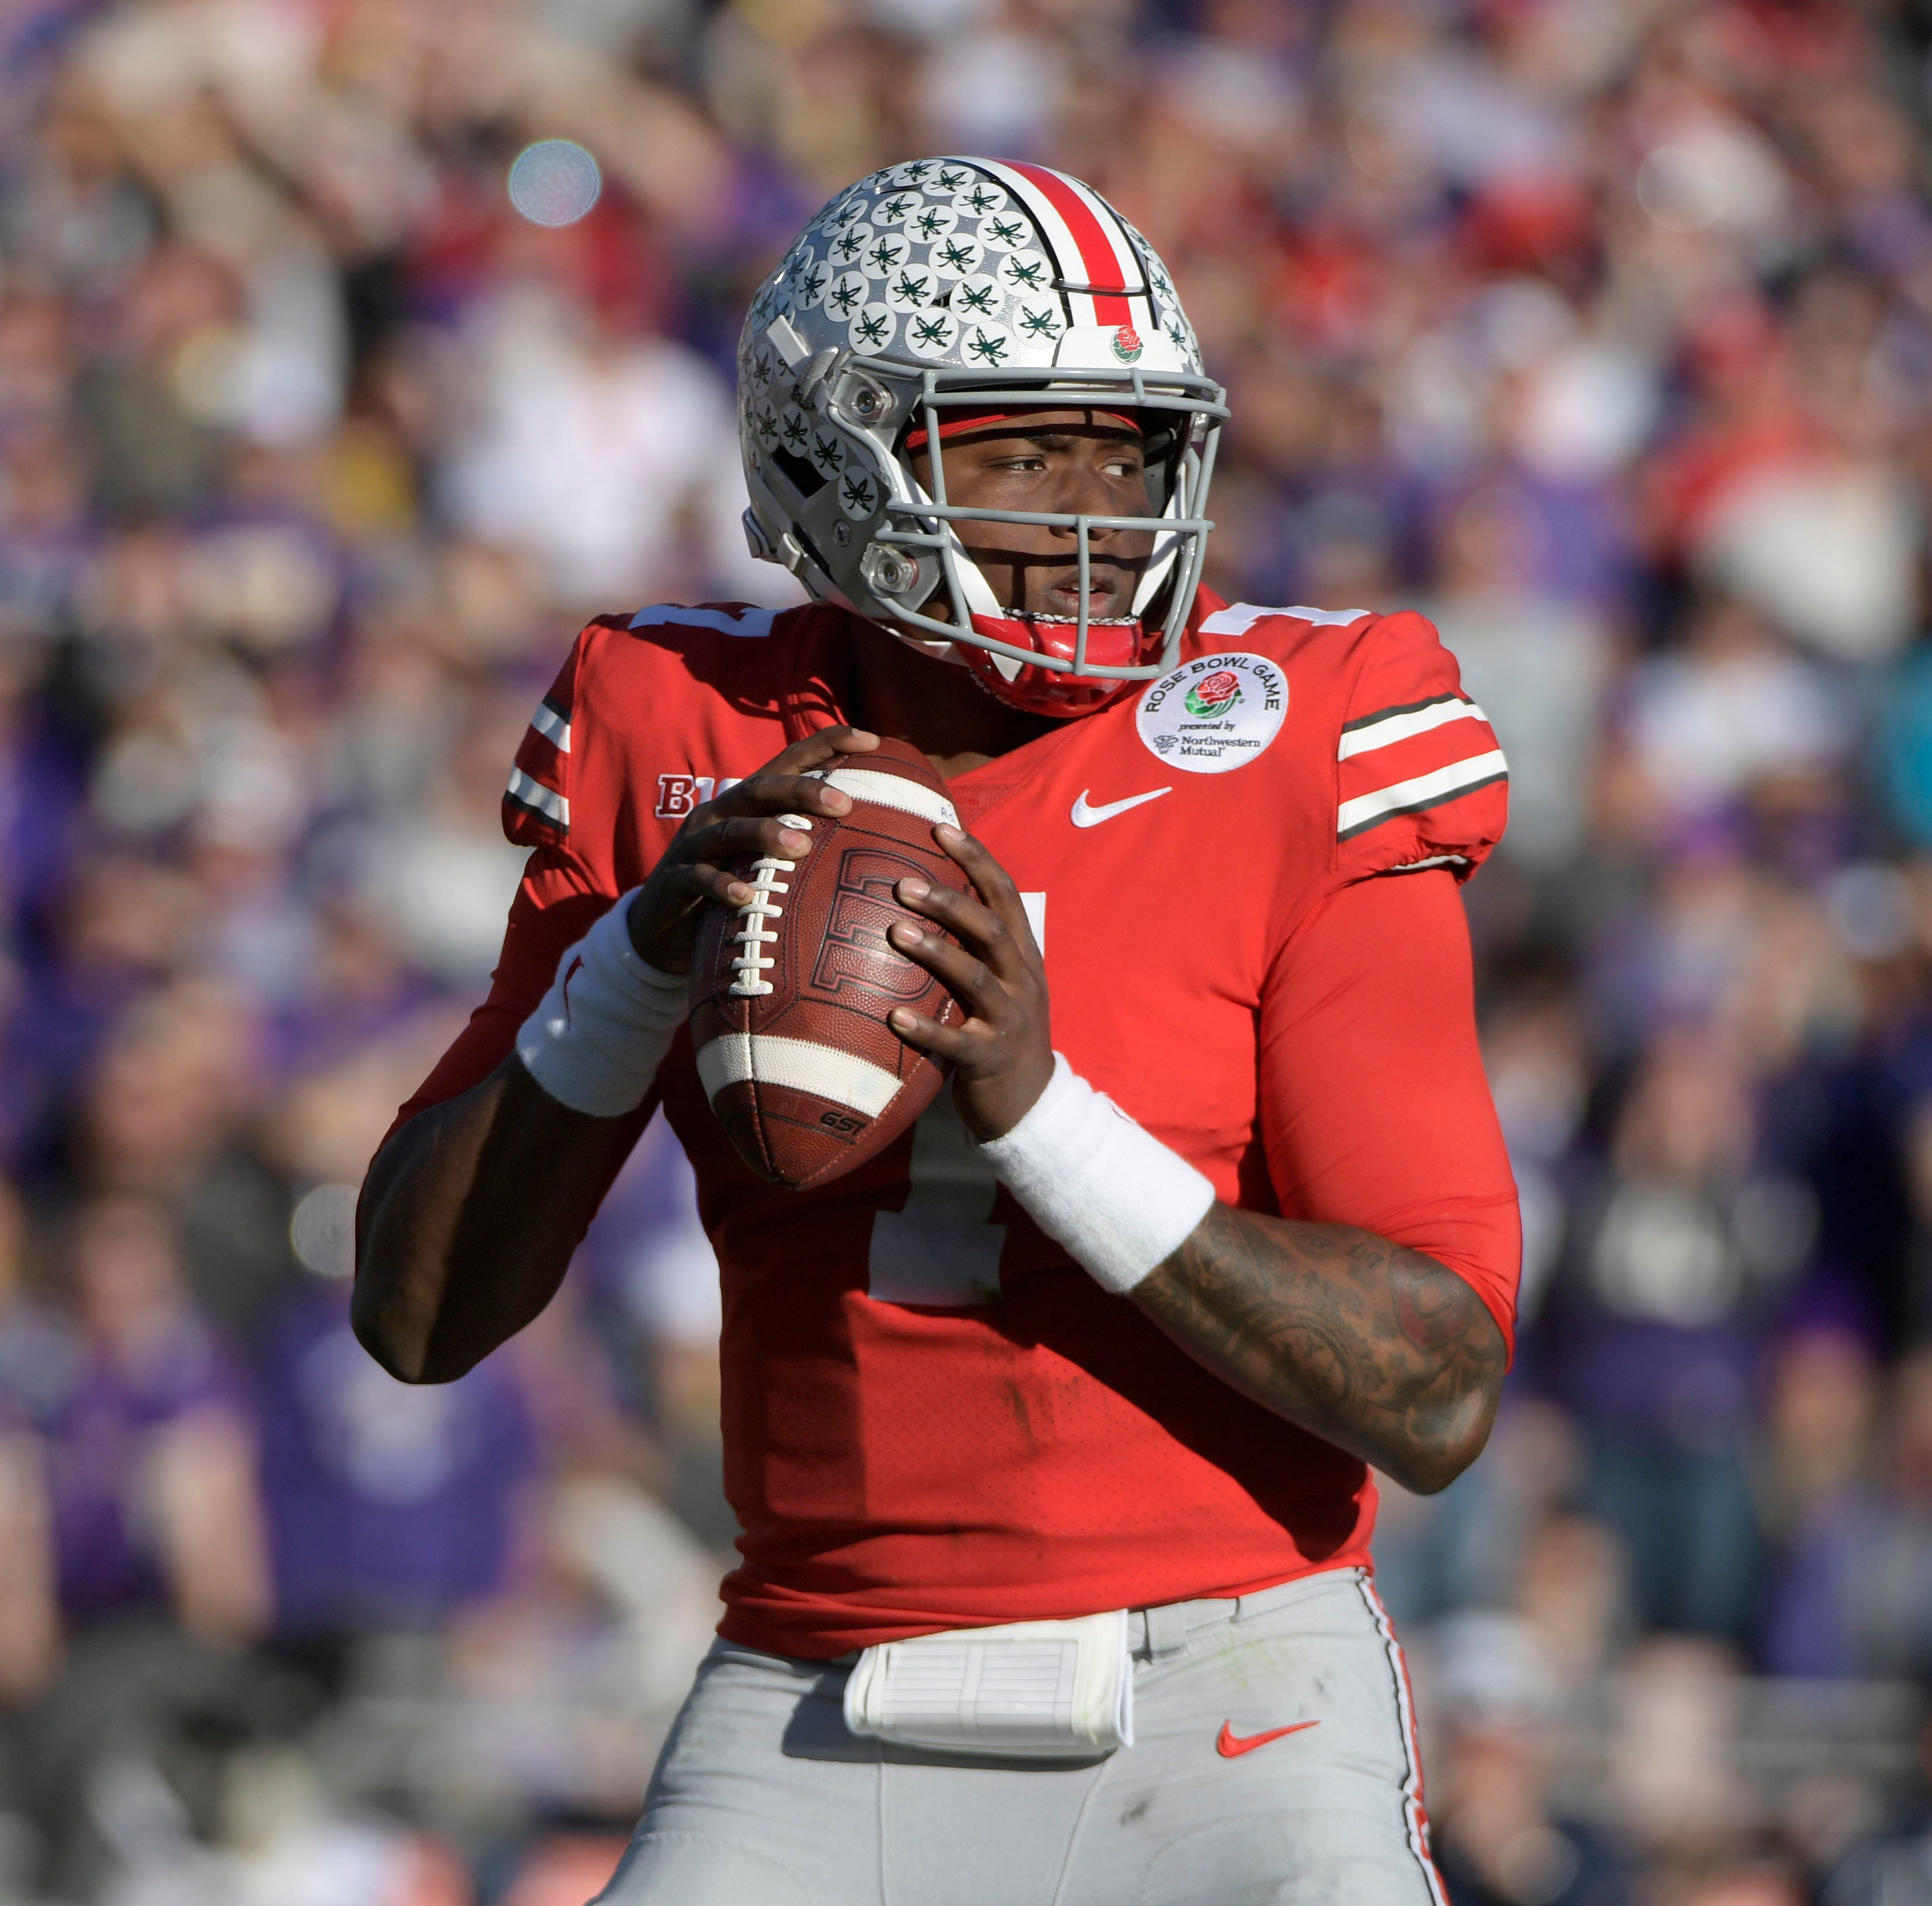 Ohio State quarterback Dwayne Haskins is one of the top quarterbacks available in the 2019 NFL draft.